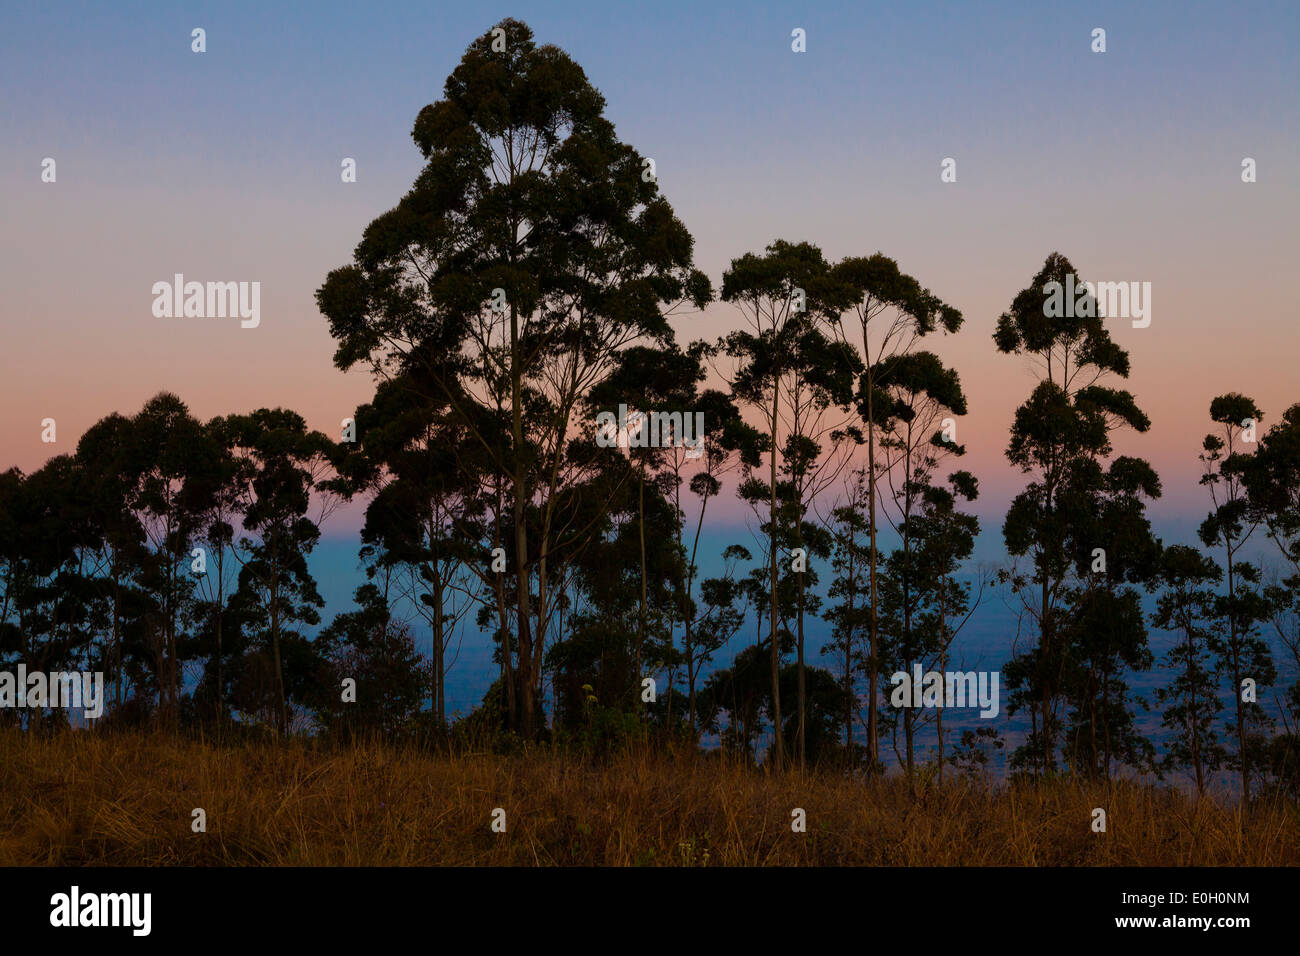 Silhouette of trees, Eucalyptus trees in the evening light on Zomba plateau, Malawi, Africa - Stock Image